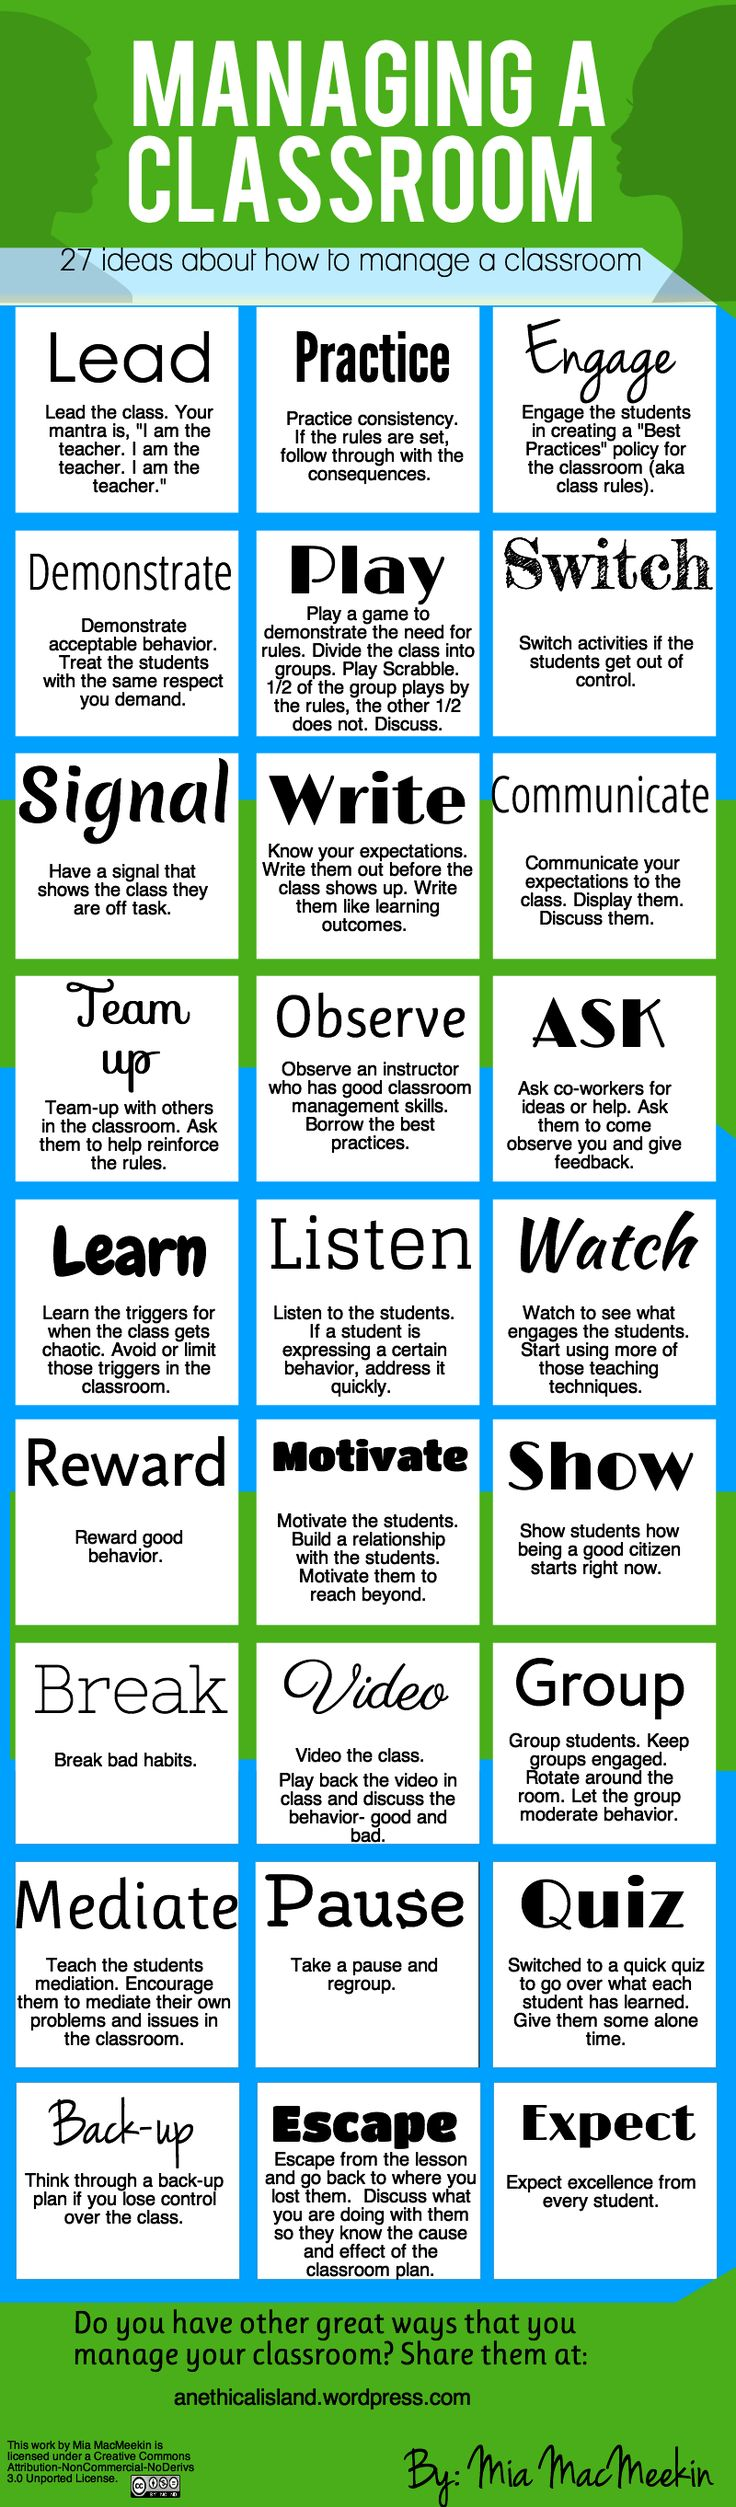 27 Tips to Effectively Manage your Classroom ~ Educational Technology and Mobile Learning